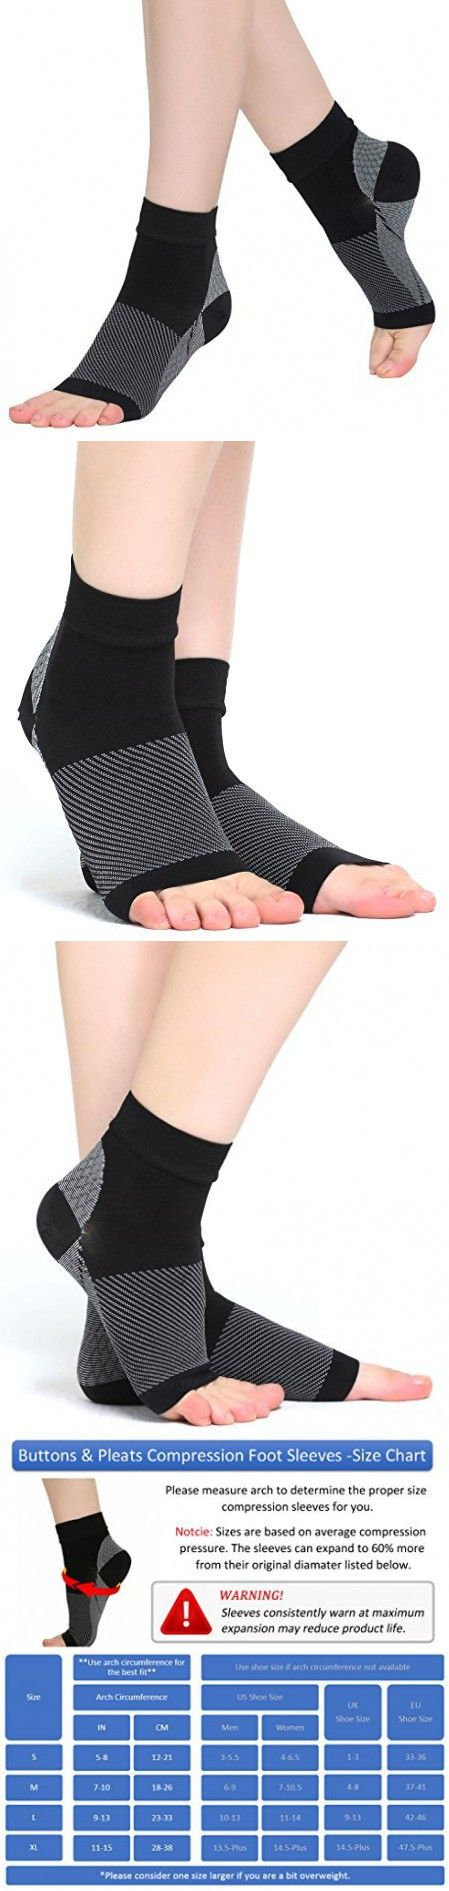 Plantar Fasciitis Socks Compression Foot Sleeves for Arch Support Toeless Front & Ankle Support S Black